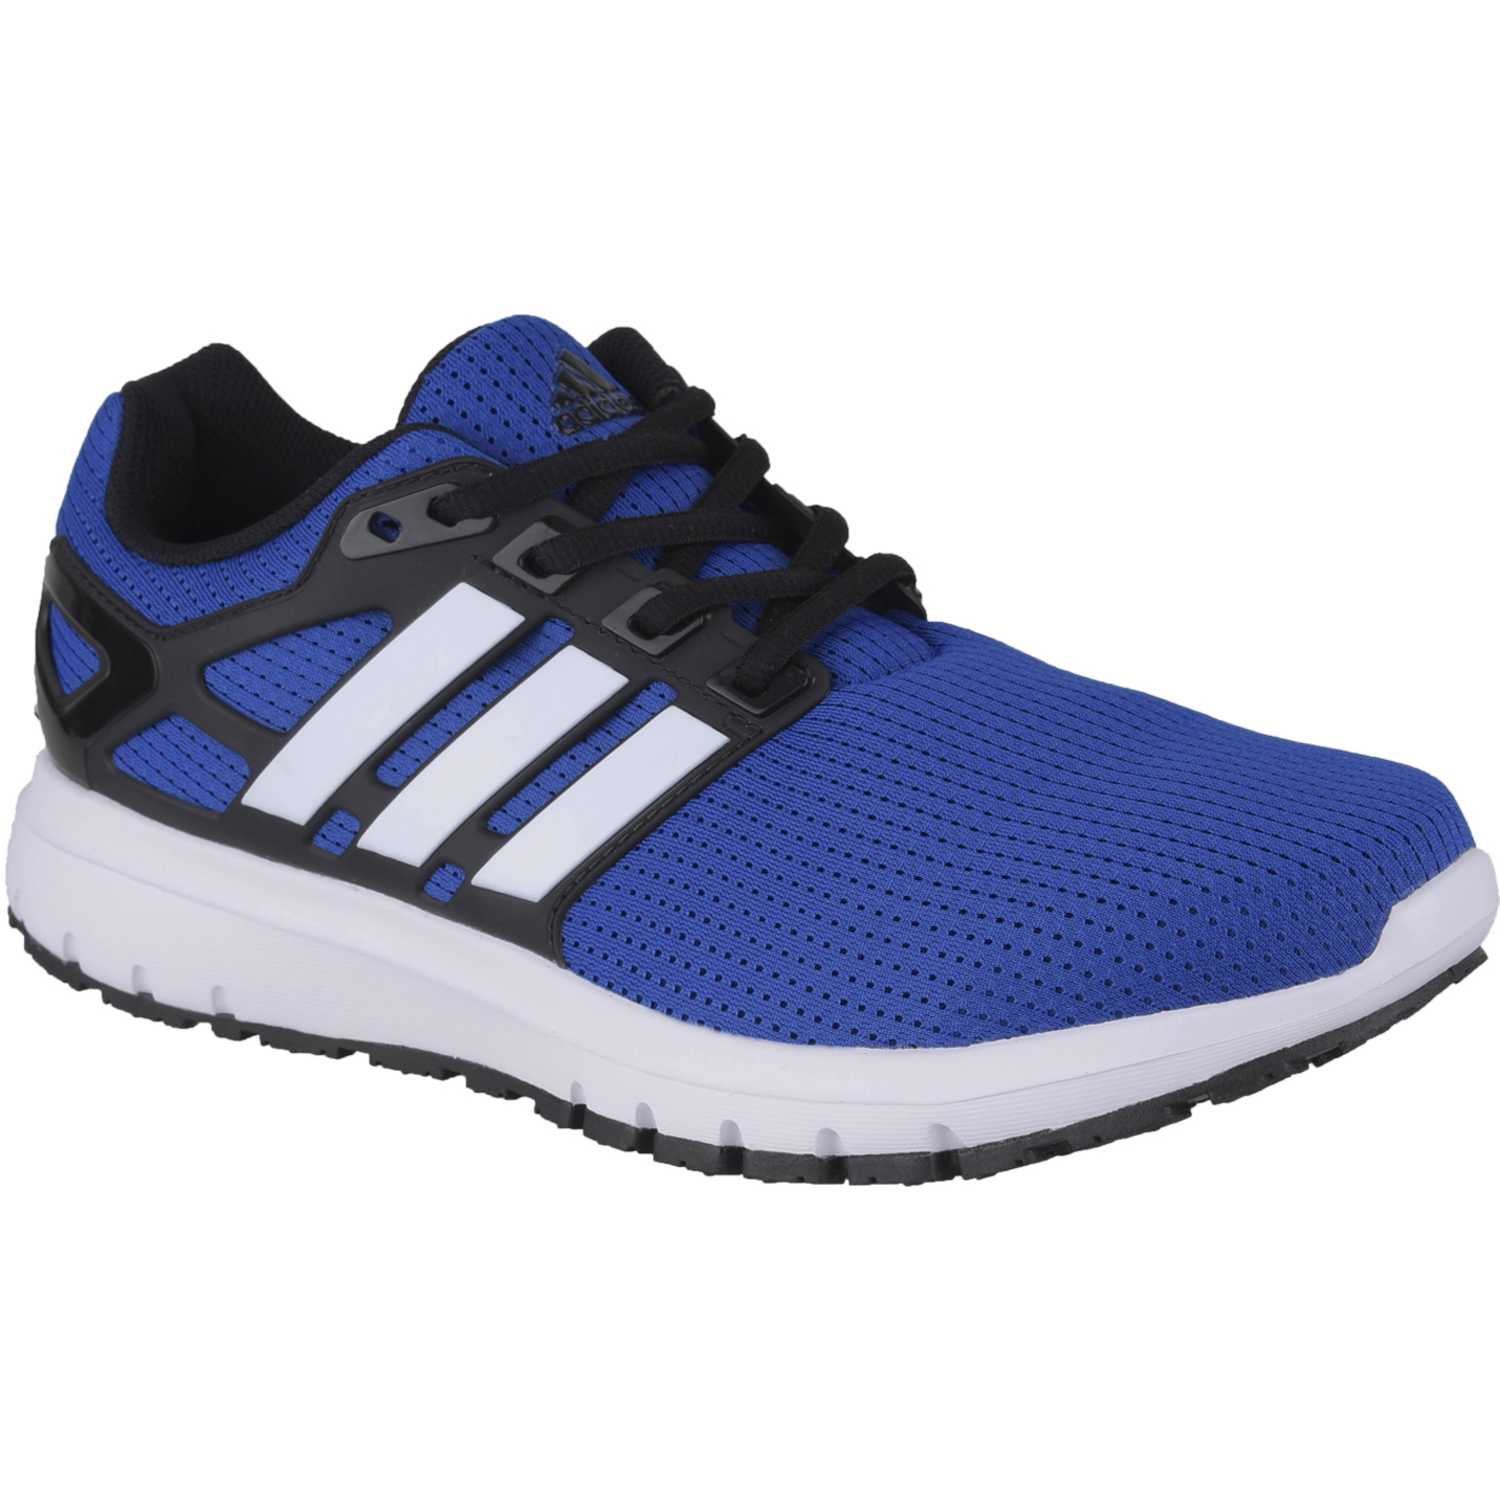 azul products marrón adidas energy hot products azul ebfae 86848 khaber akheer 539c2f